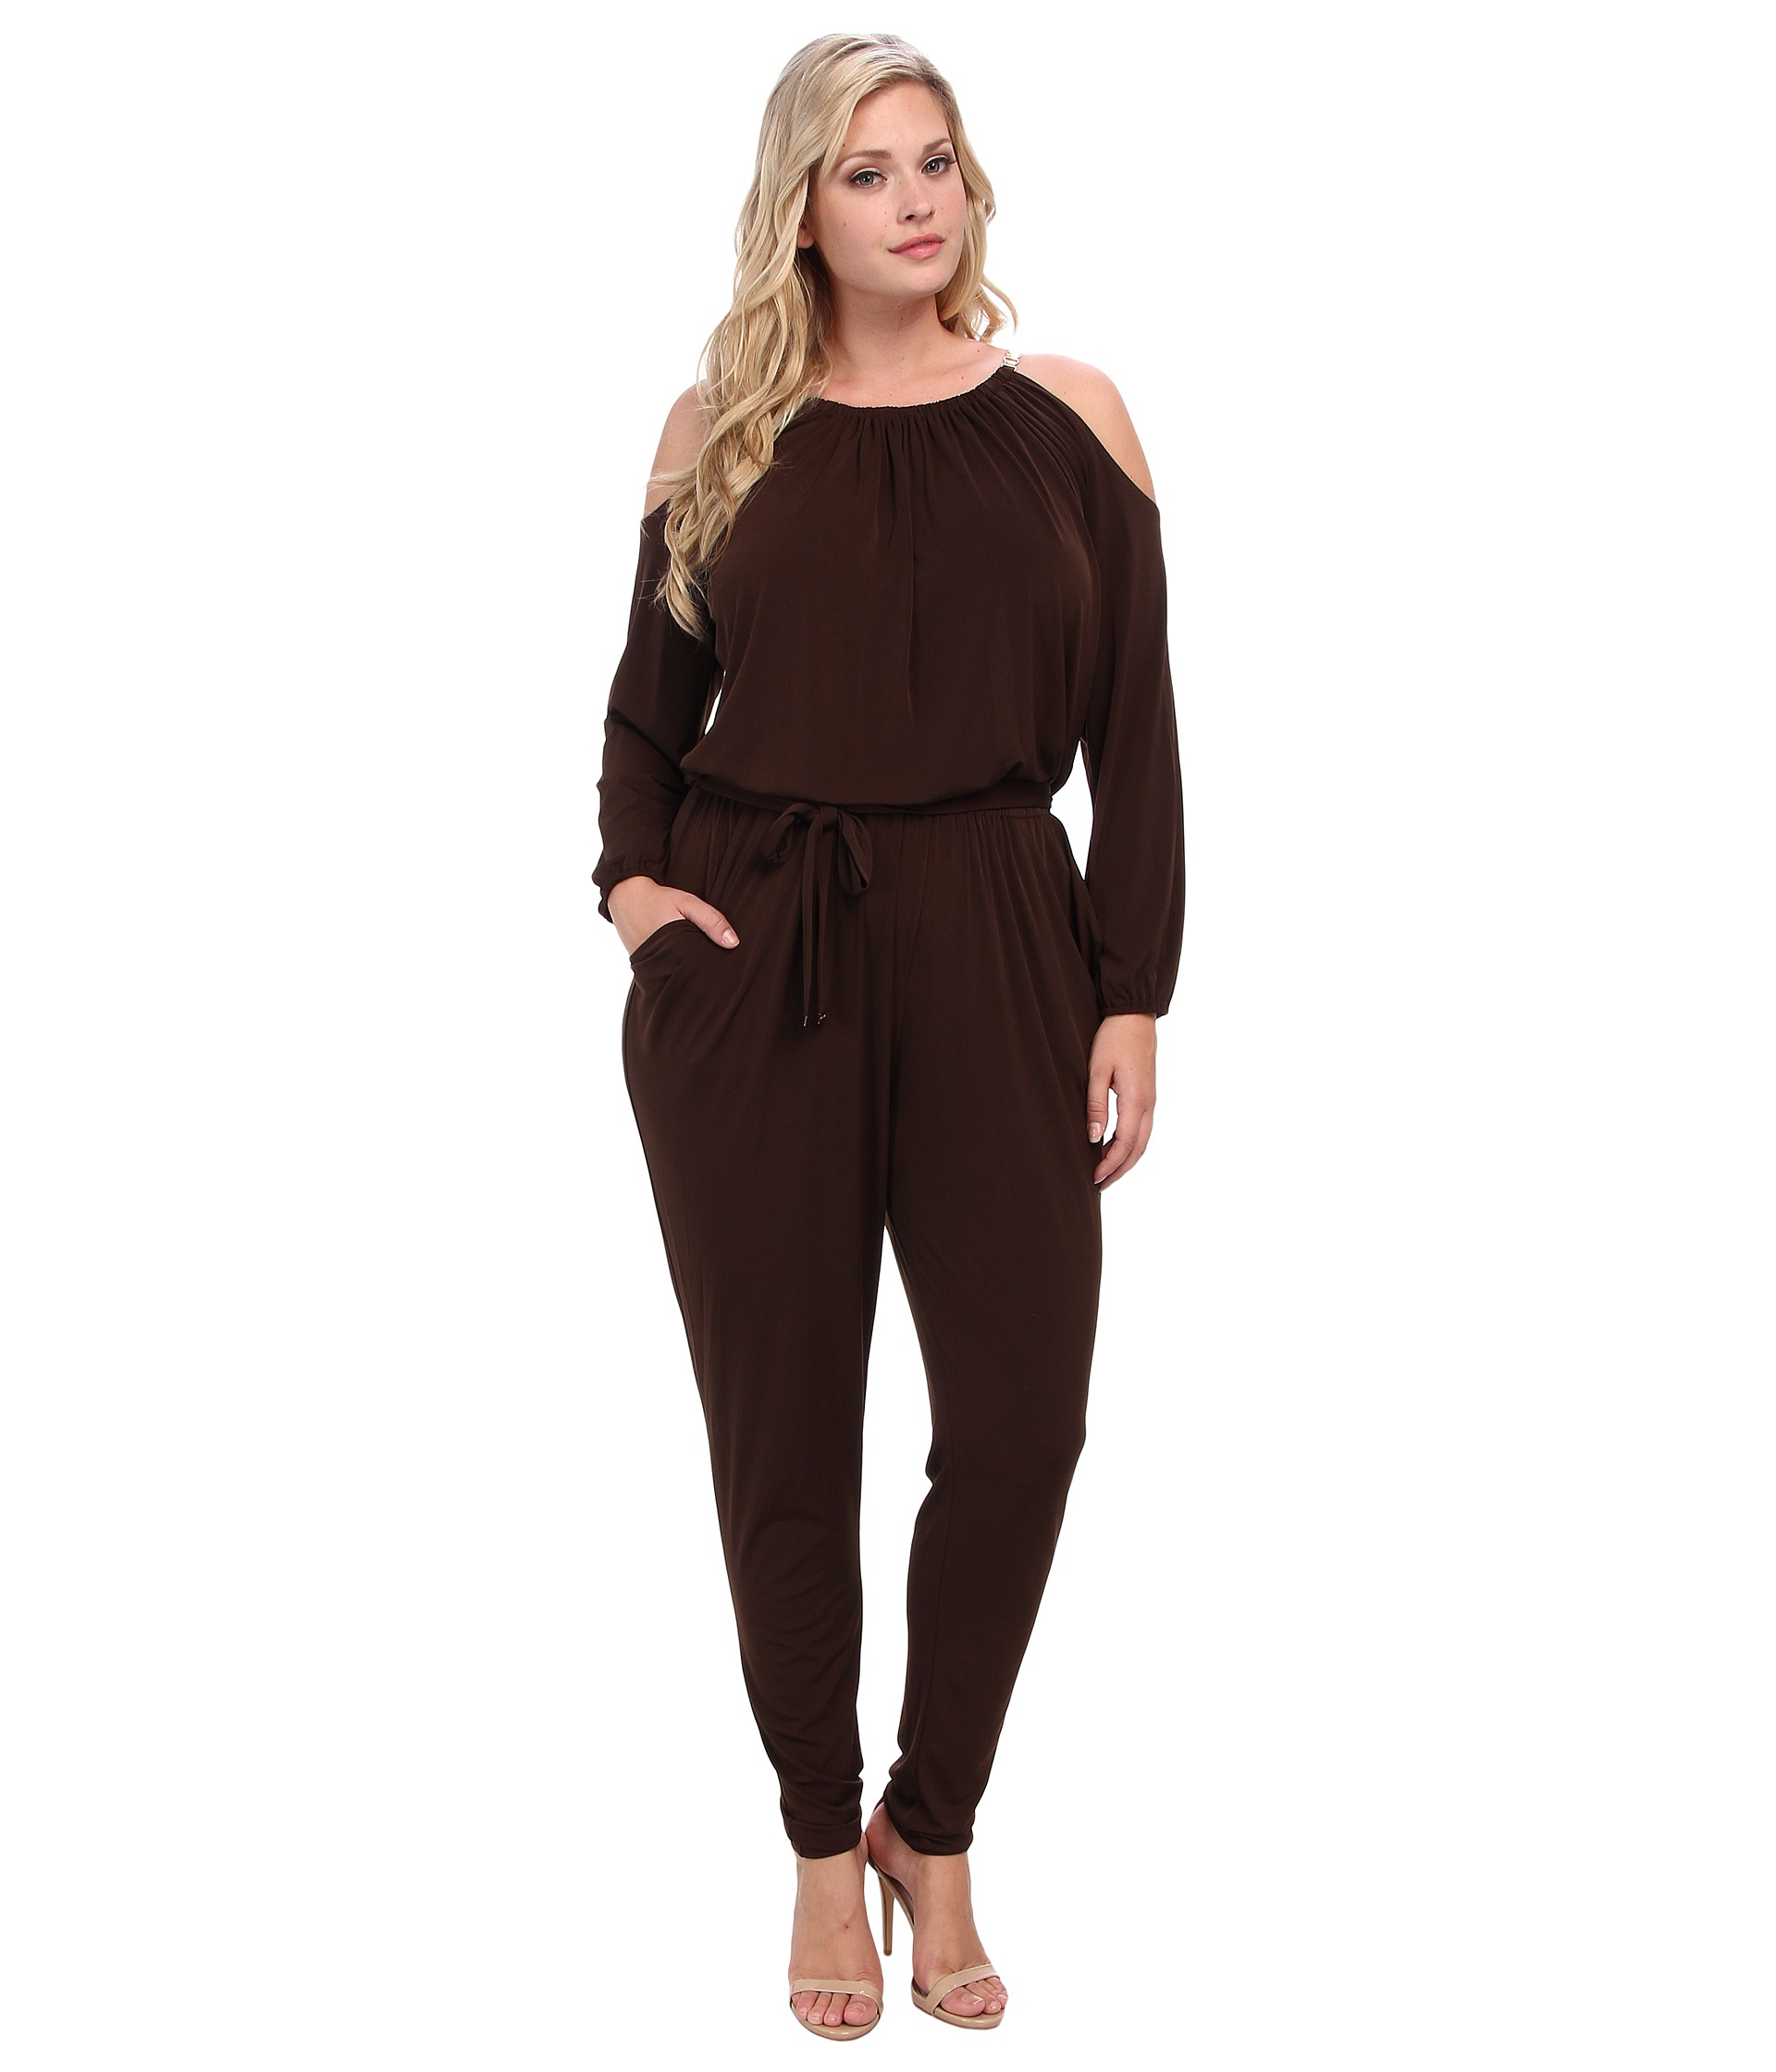 michael michael kors plus size chain strap jumpsuit in brown chocolate lyst. Black Bedroom Furniture Sets. Home Design Ideas